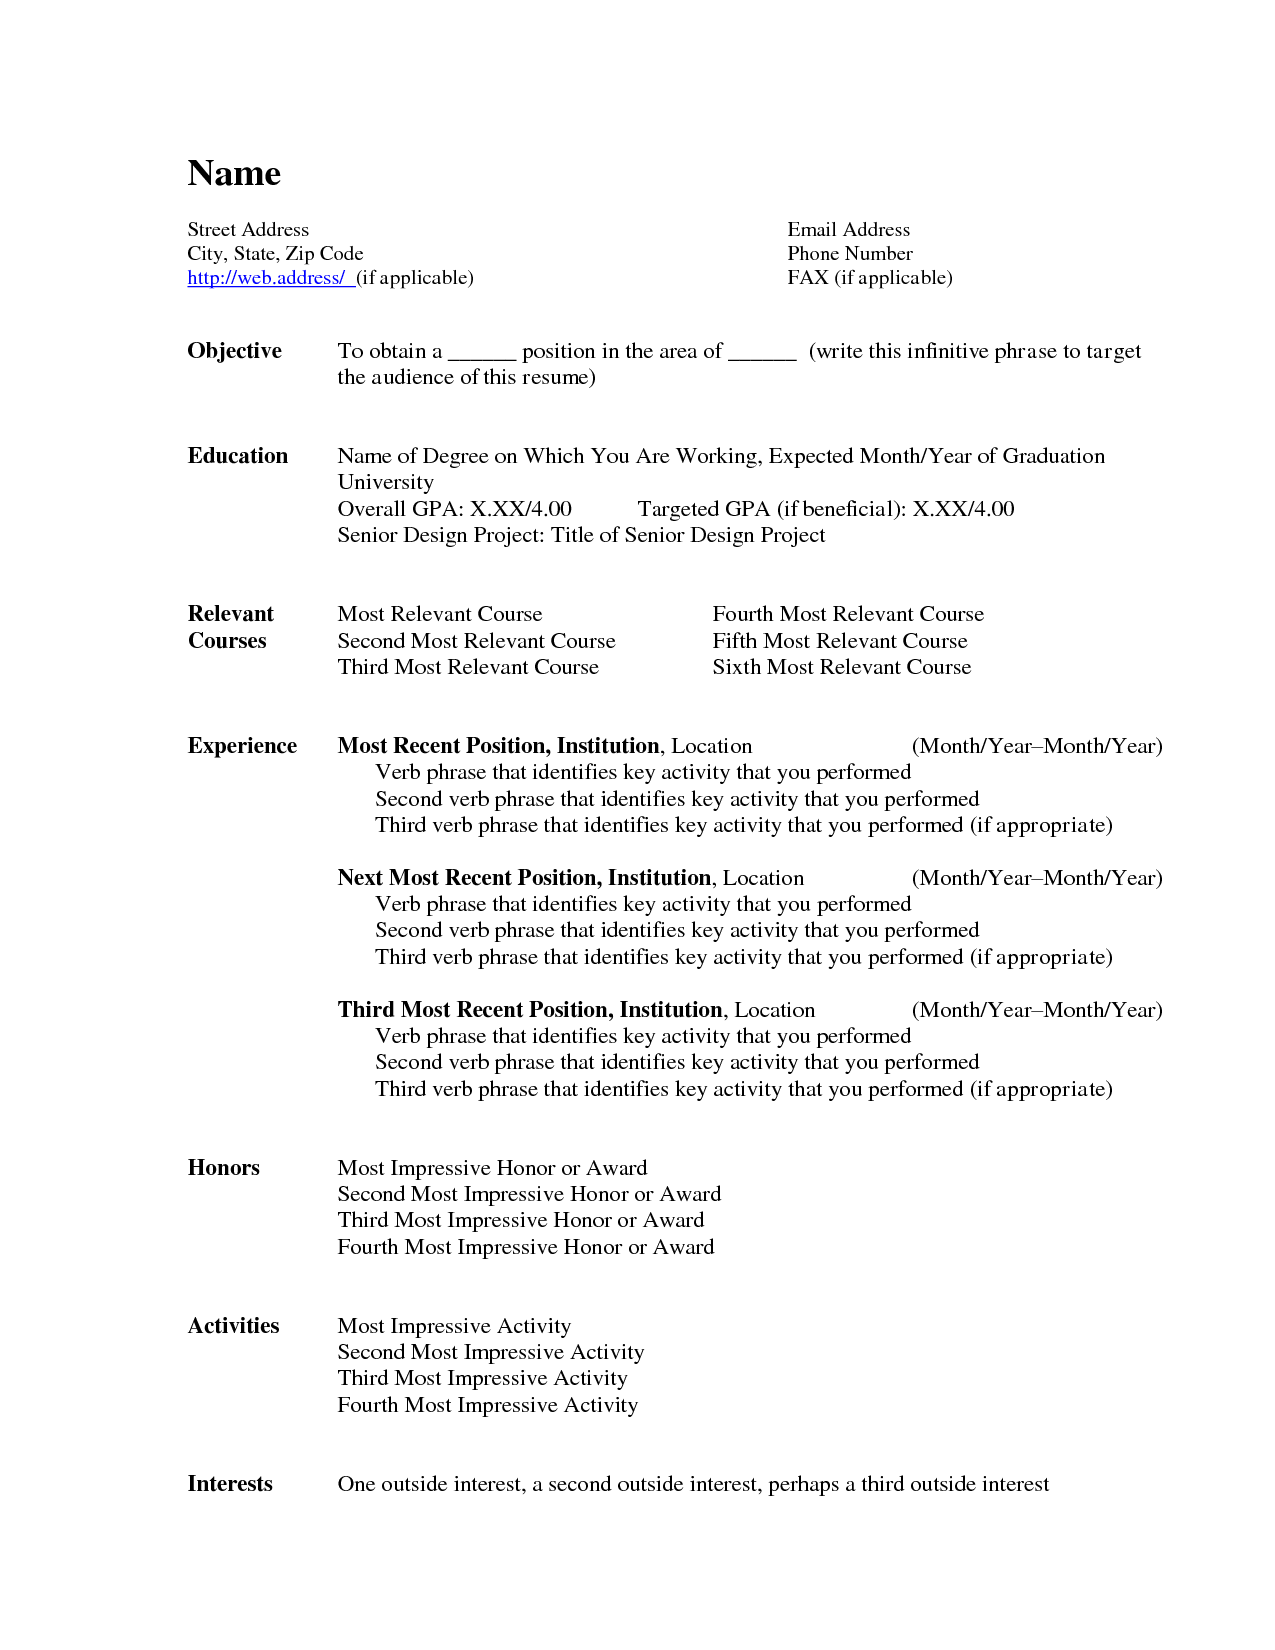 microsoft word resume template builder http job - Resume Template Builder